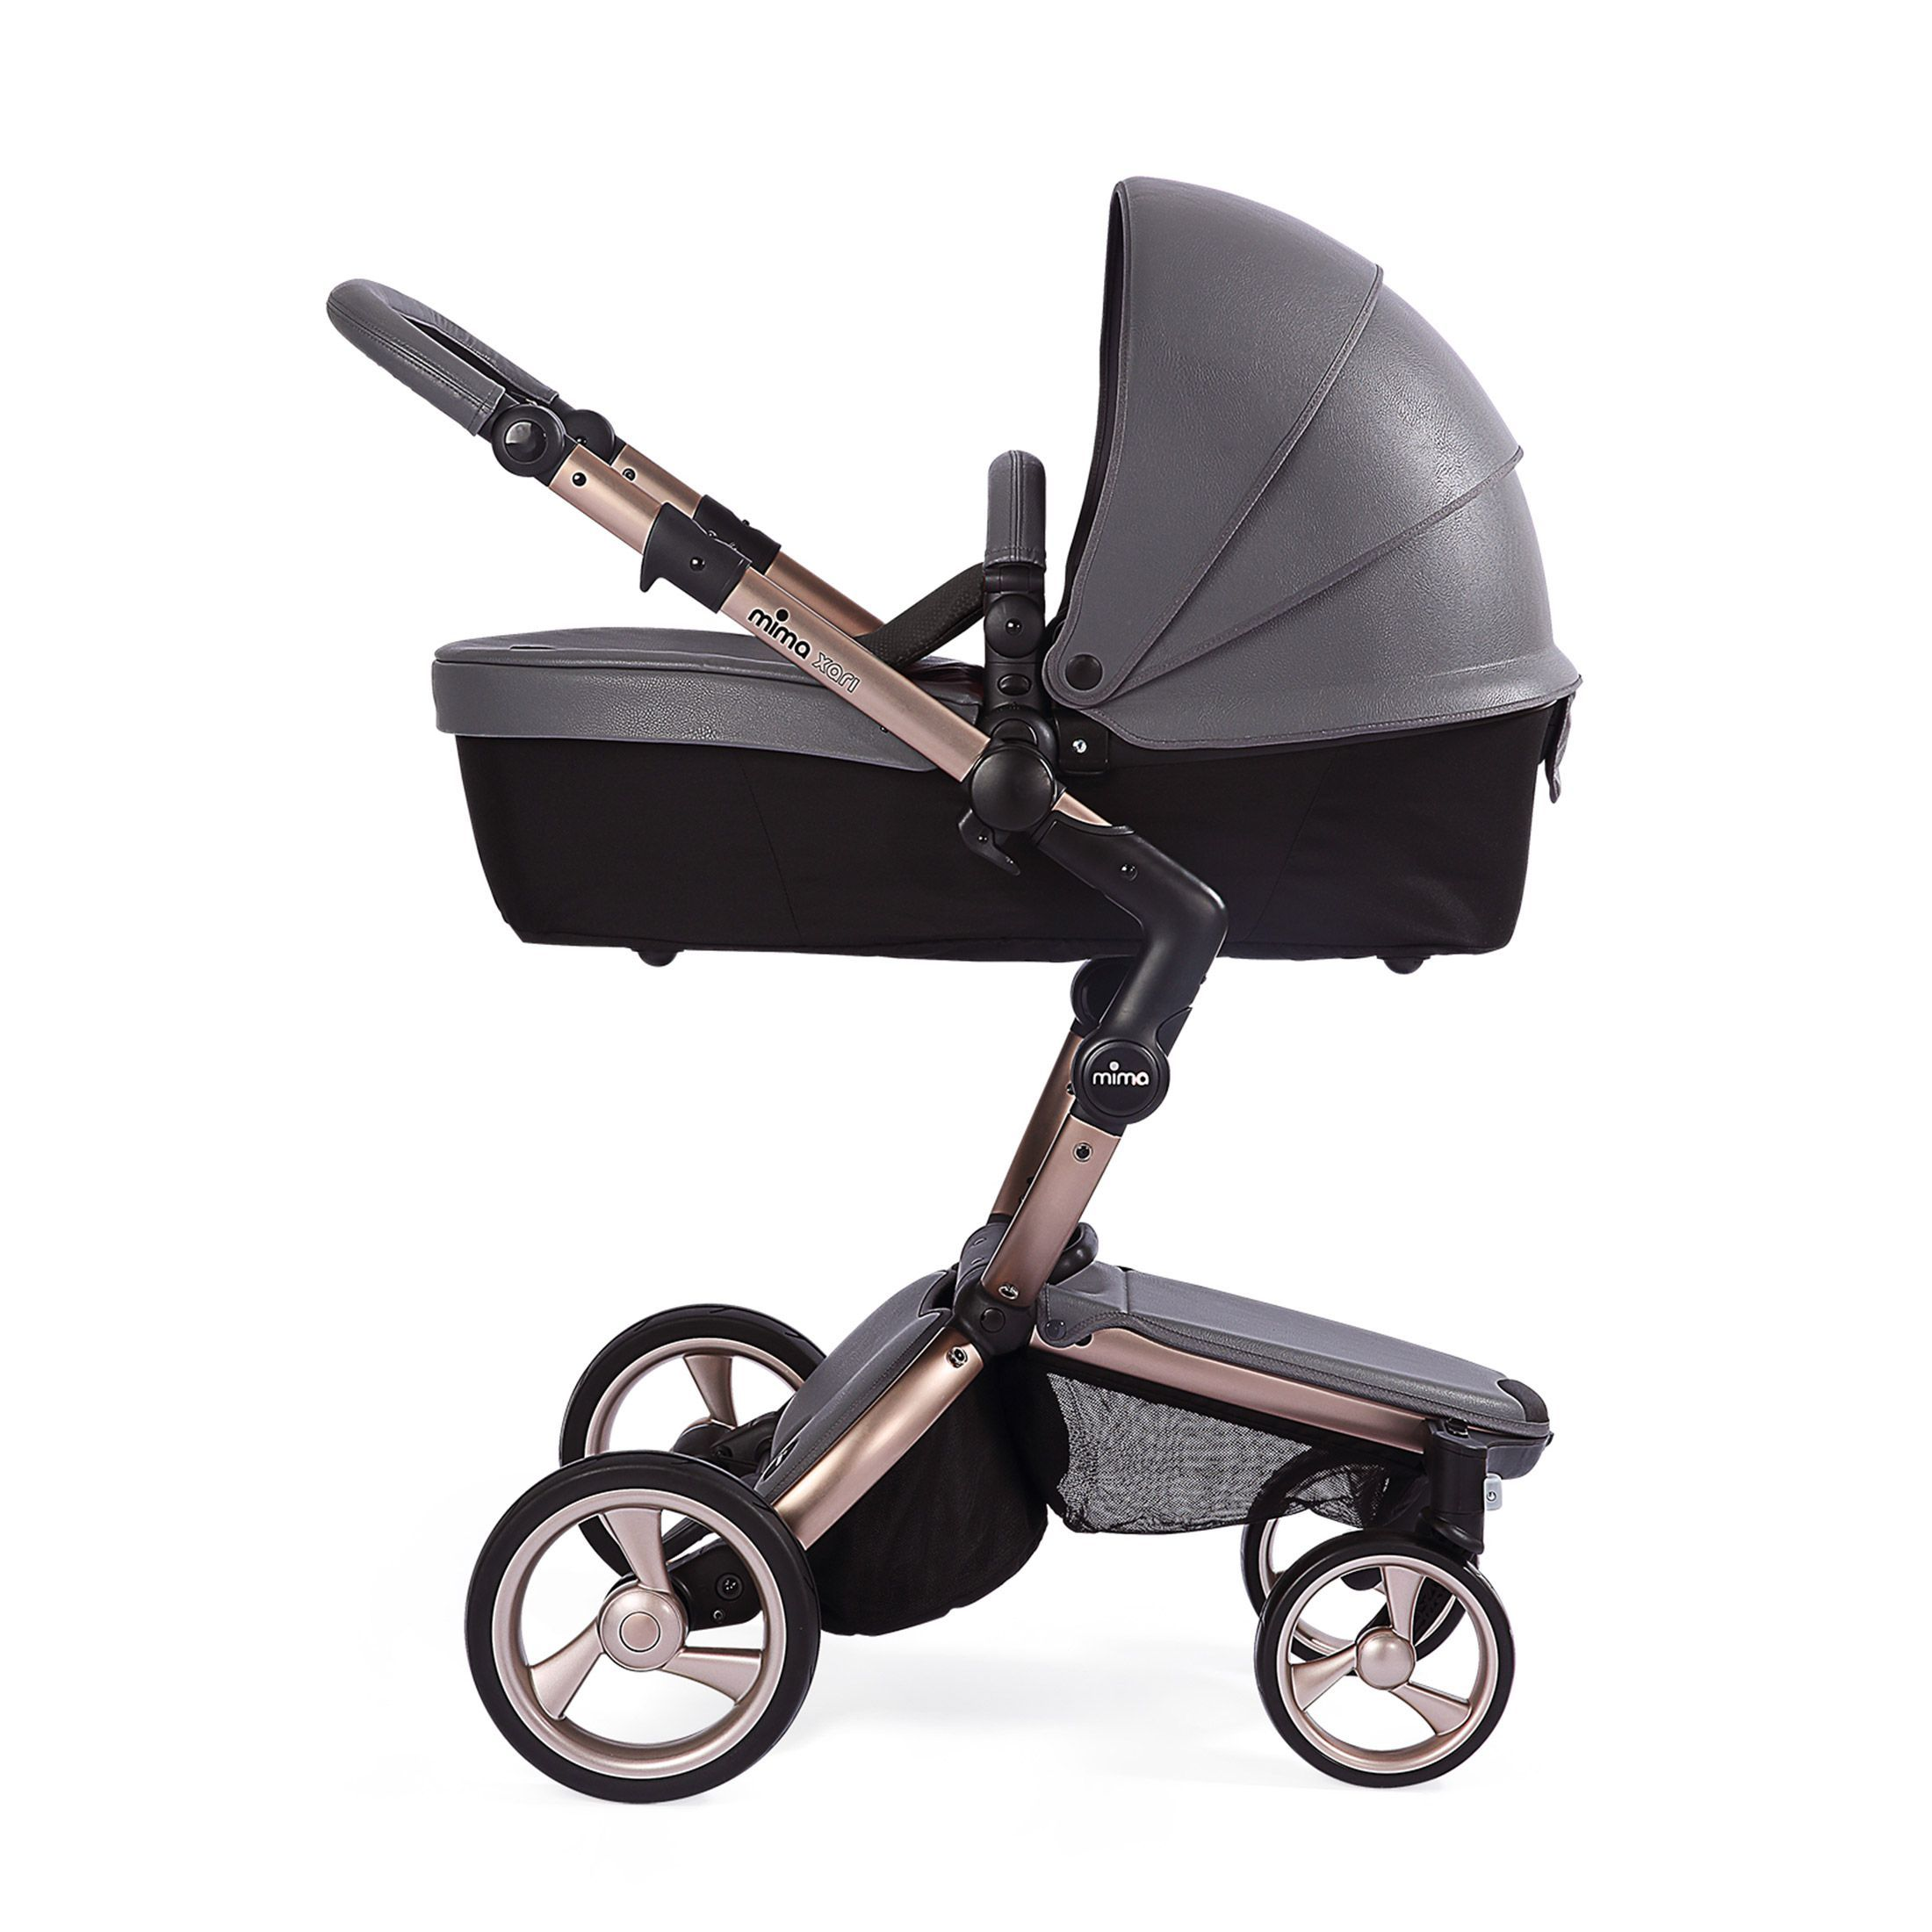 Knorr Kinderwagen Online Shop Kinderwagen Mima Xari Rosé Gold Flair Cool Grey Baby